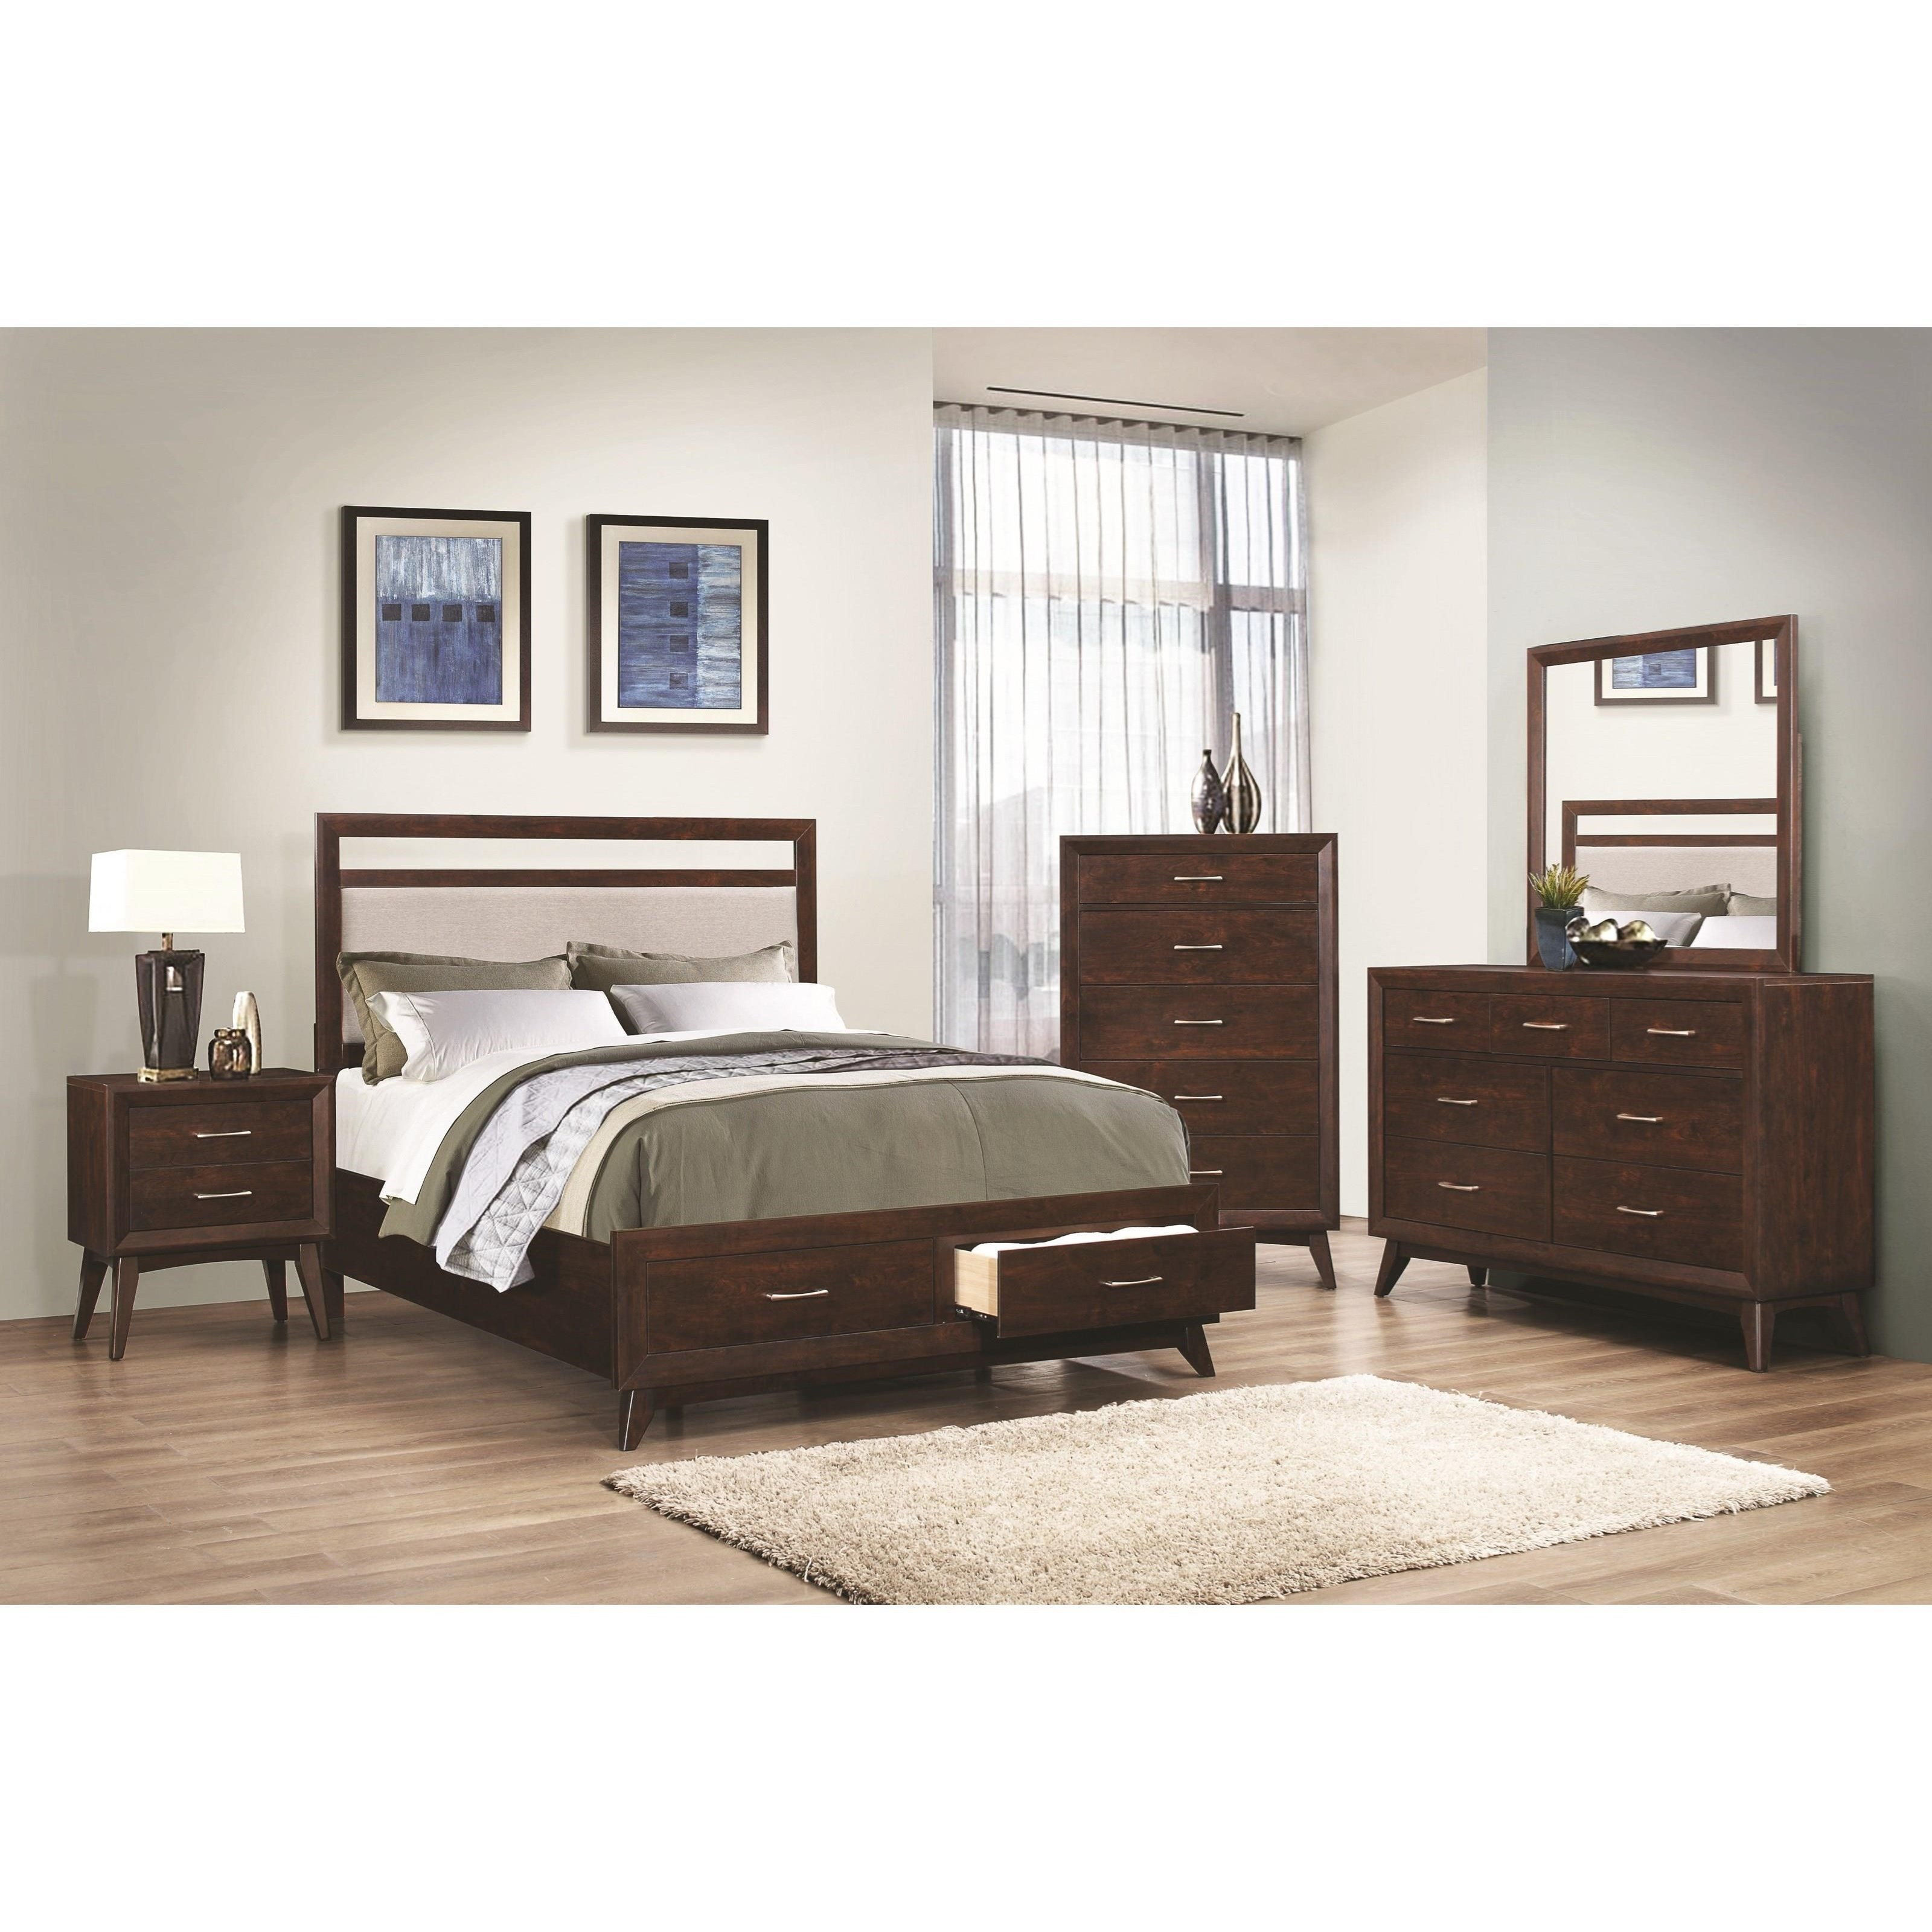 Coaster Carrington King Storage Bed With Upholstered